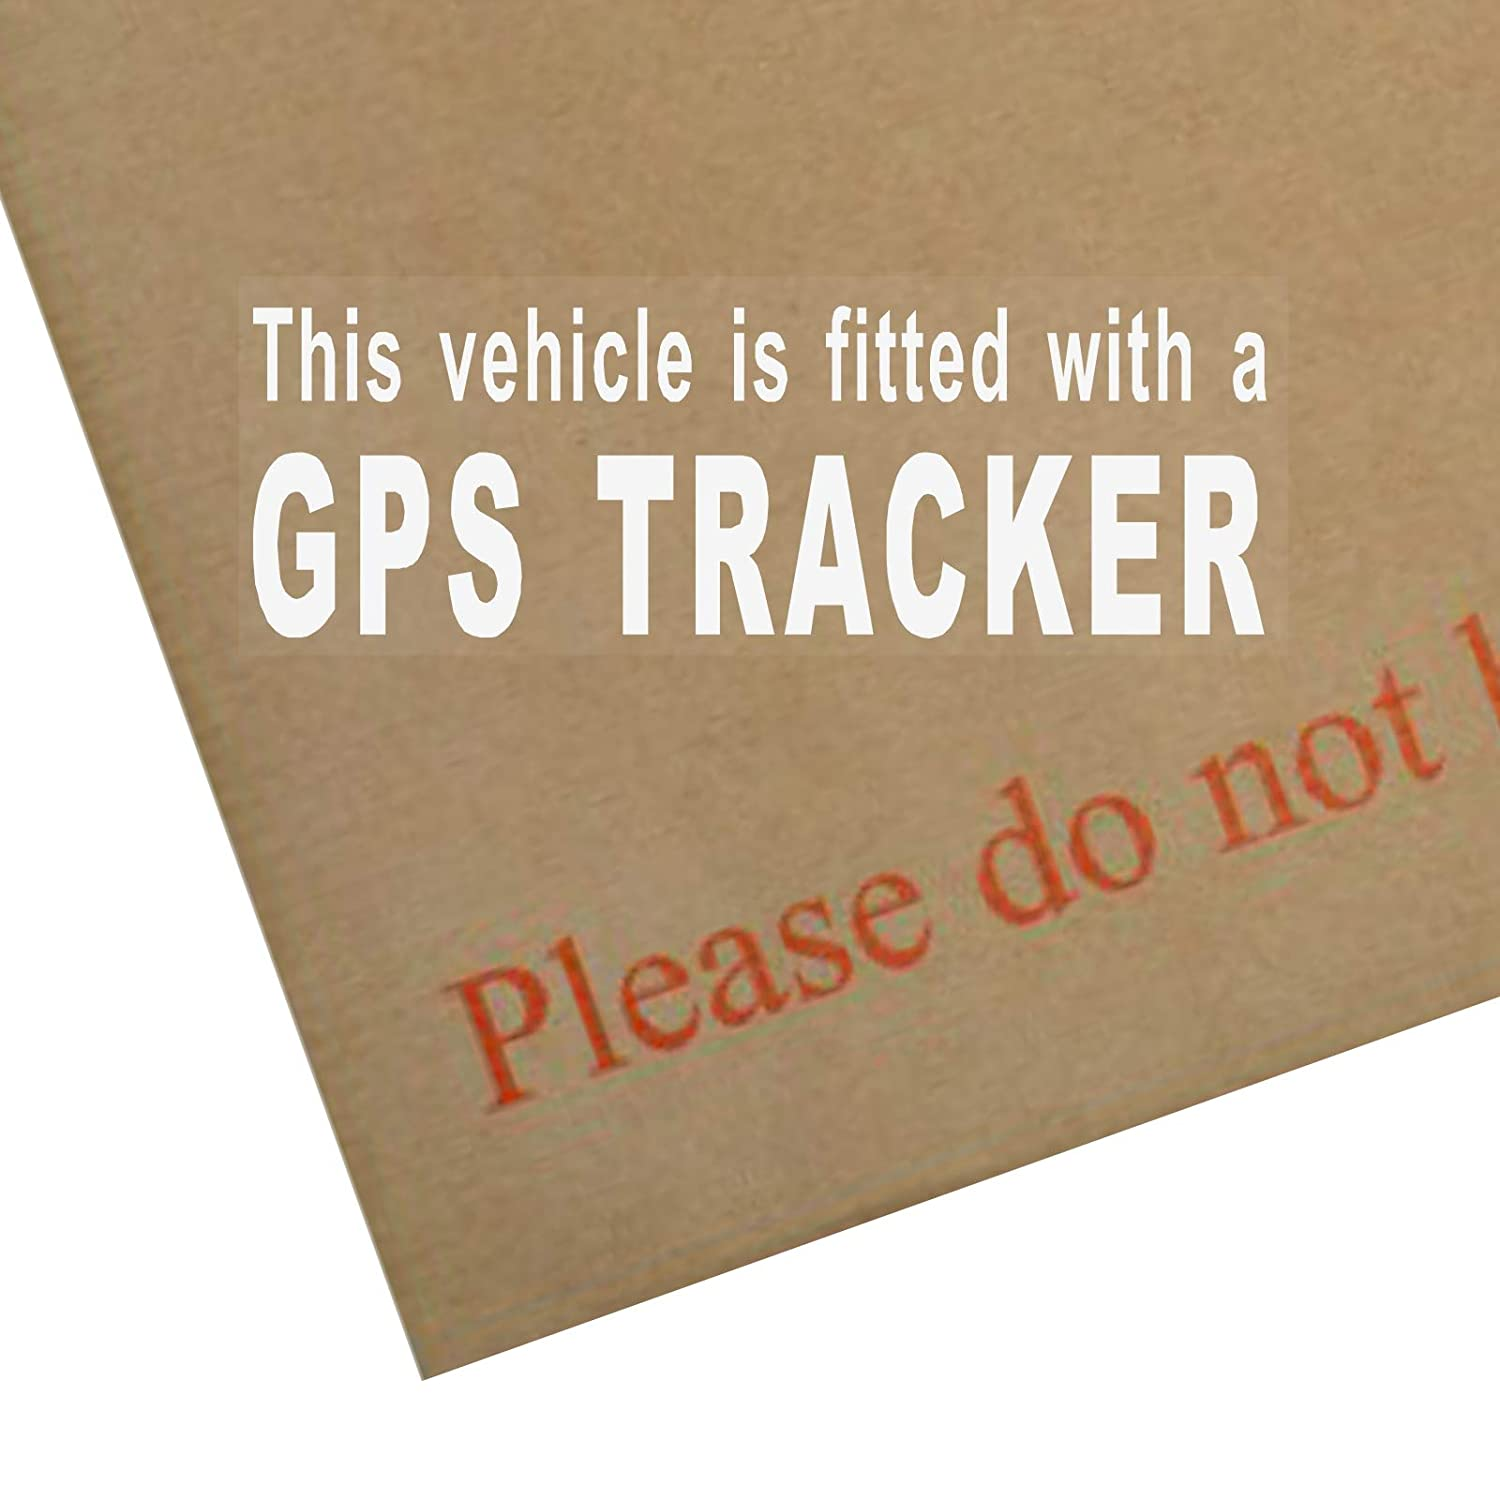 Platinum Place 4 x Fitted with a GPS Tracker Security-Internal WINDOW Stickers-WHITE on CLEAR-Car,Van,Truck,Taxi,Mini Cab,Bus,Coach Alarm Signs,Warning,Notice,Protection,Secure,Protect